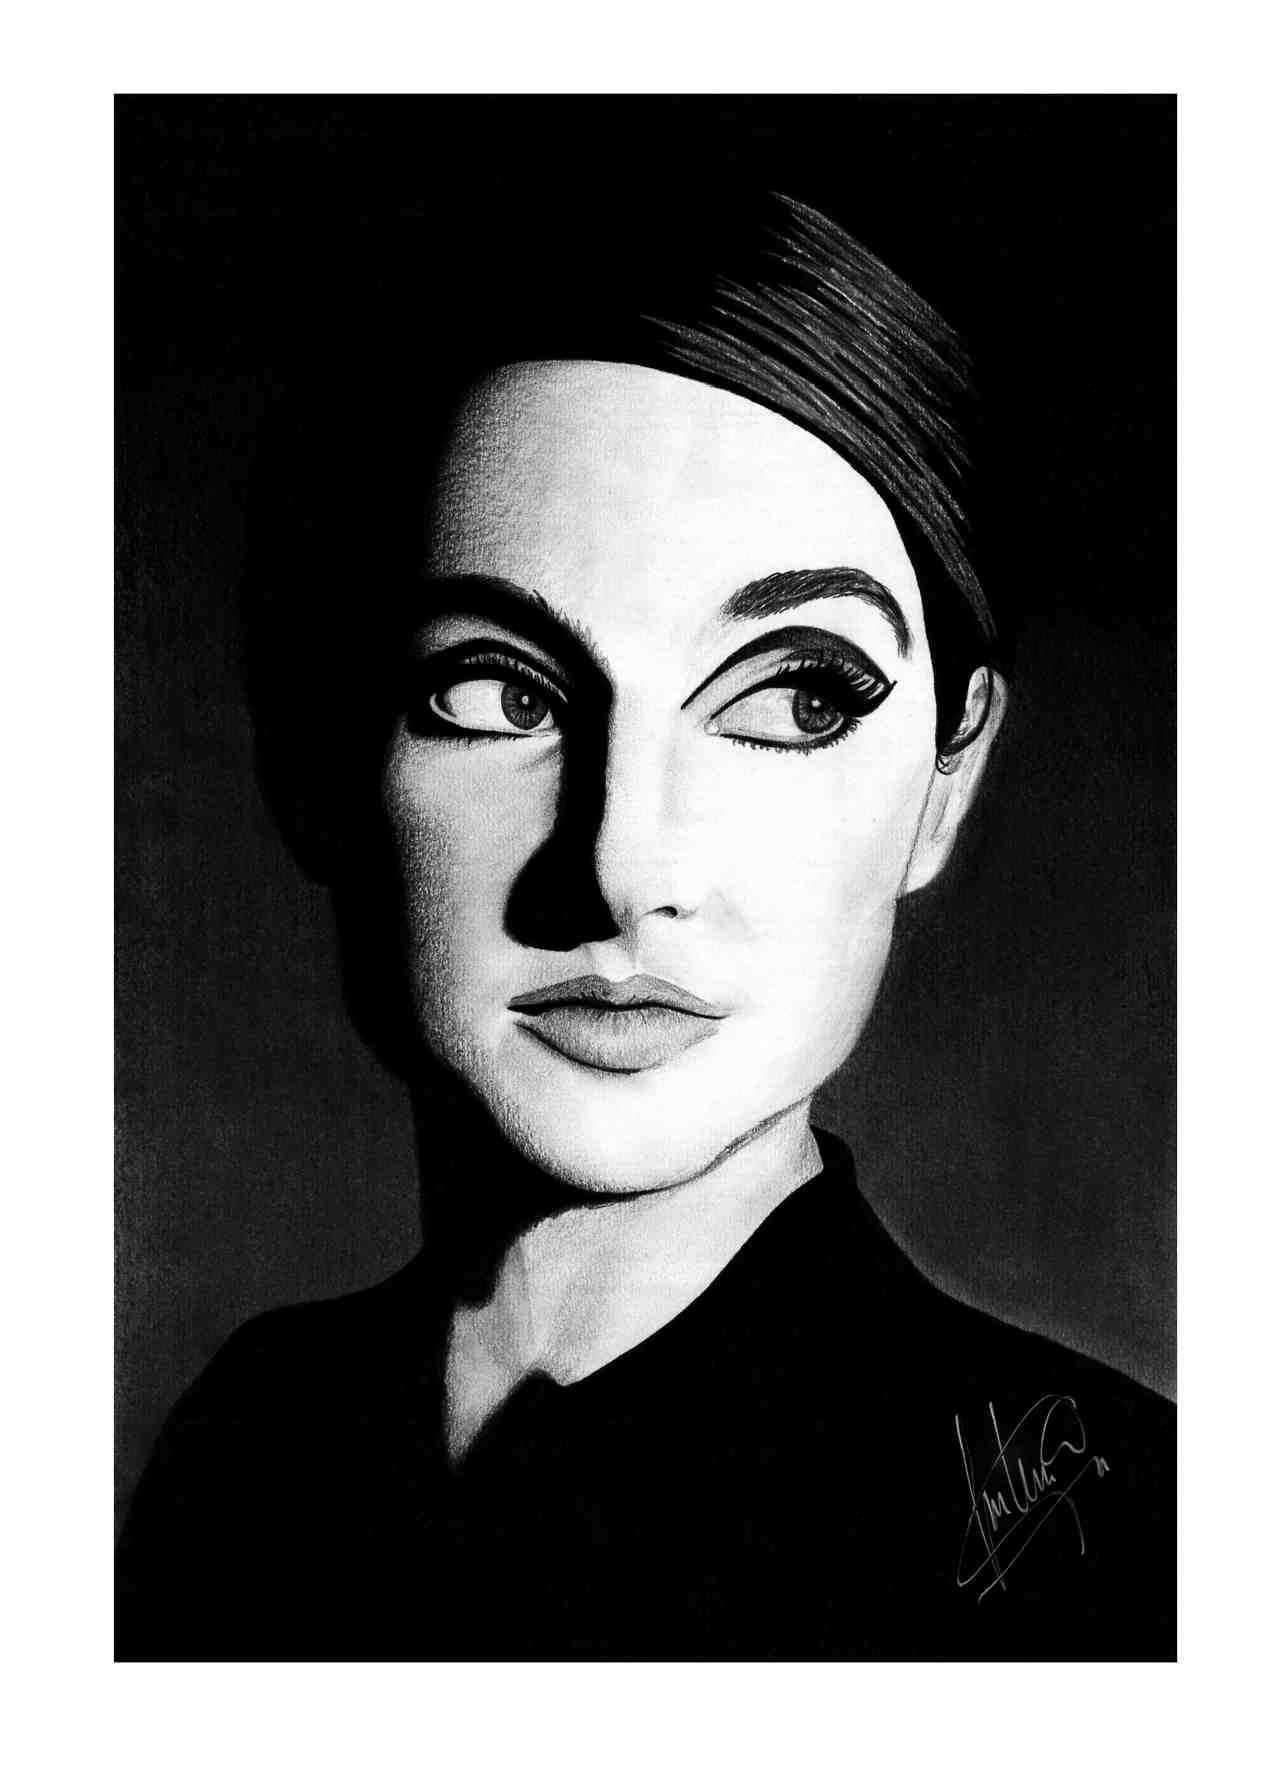 Here's a portrait of the beautiful Shailene Woodley,keep being awesome! :D